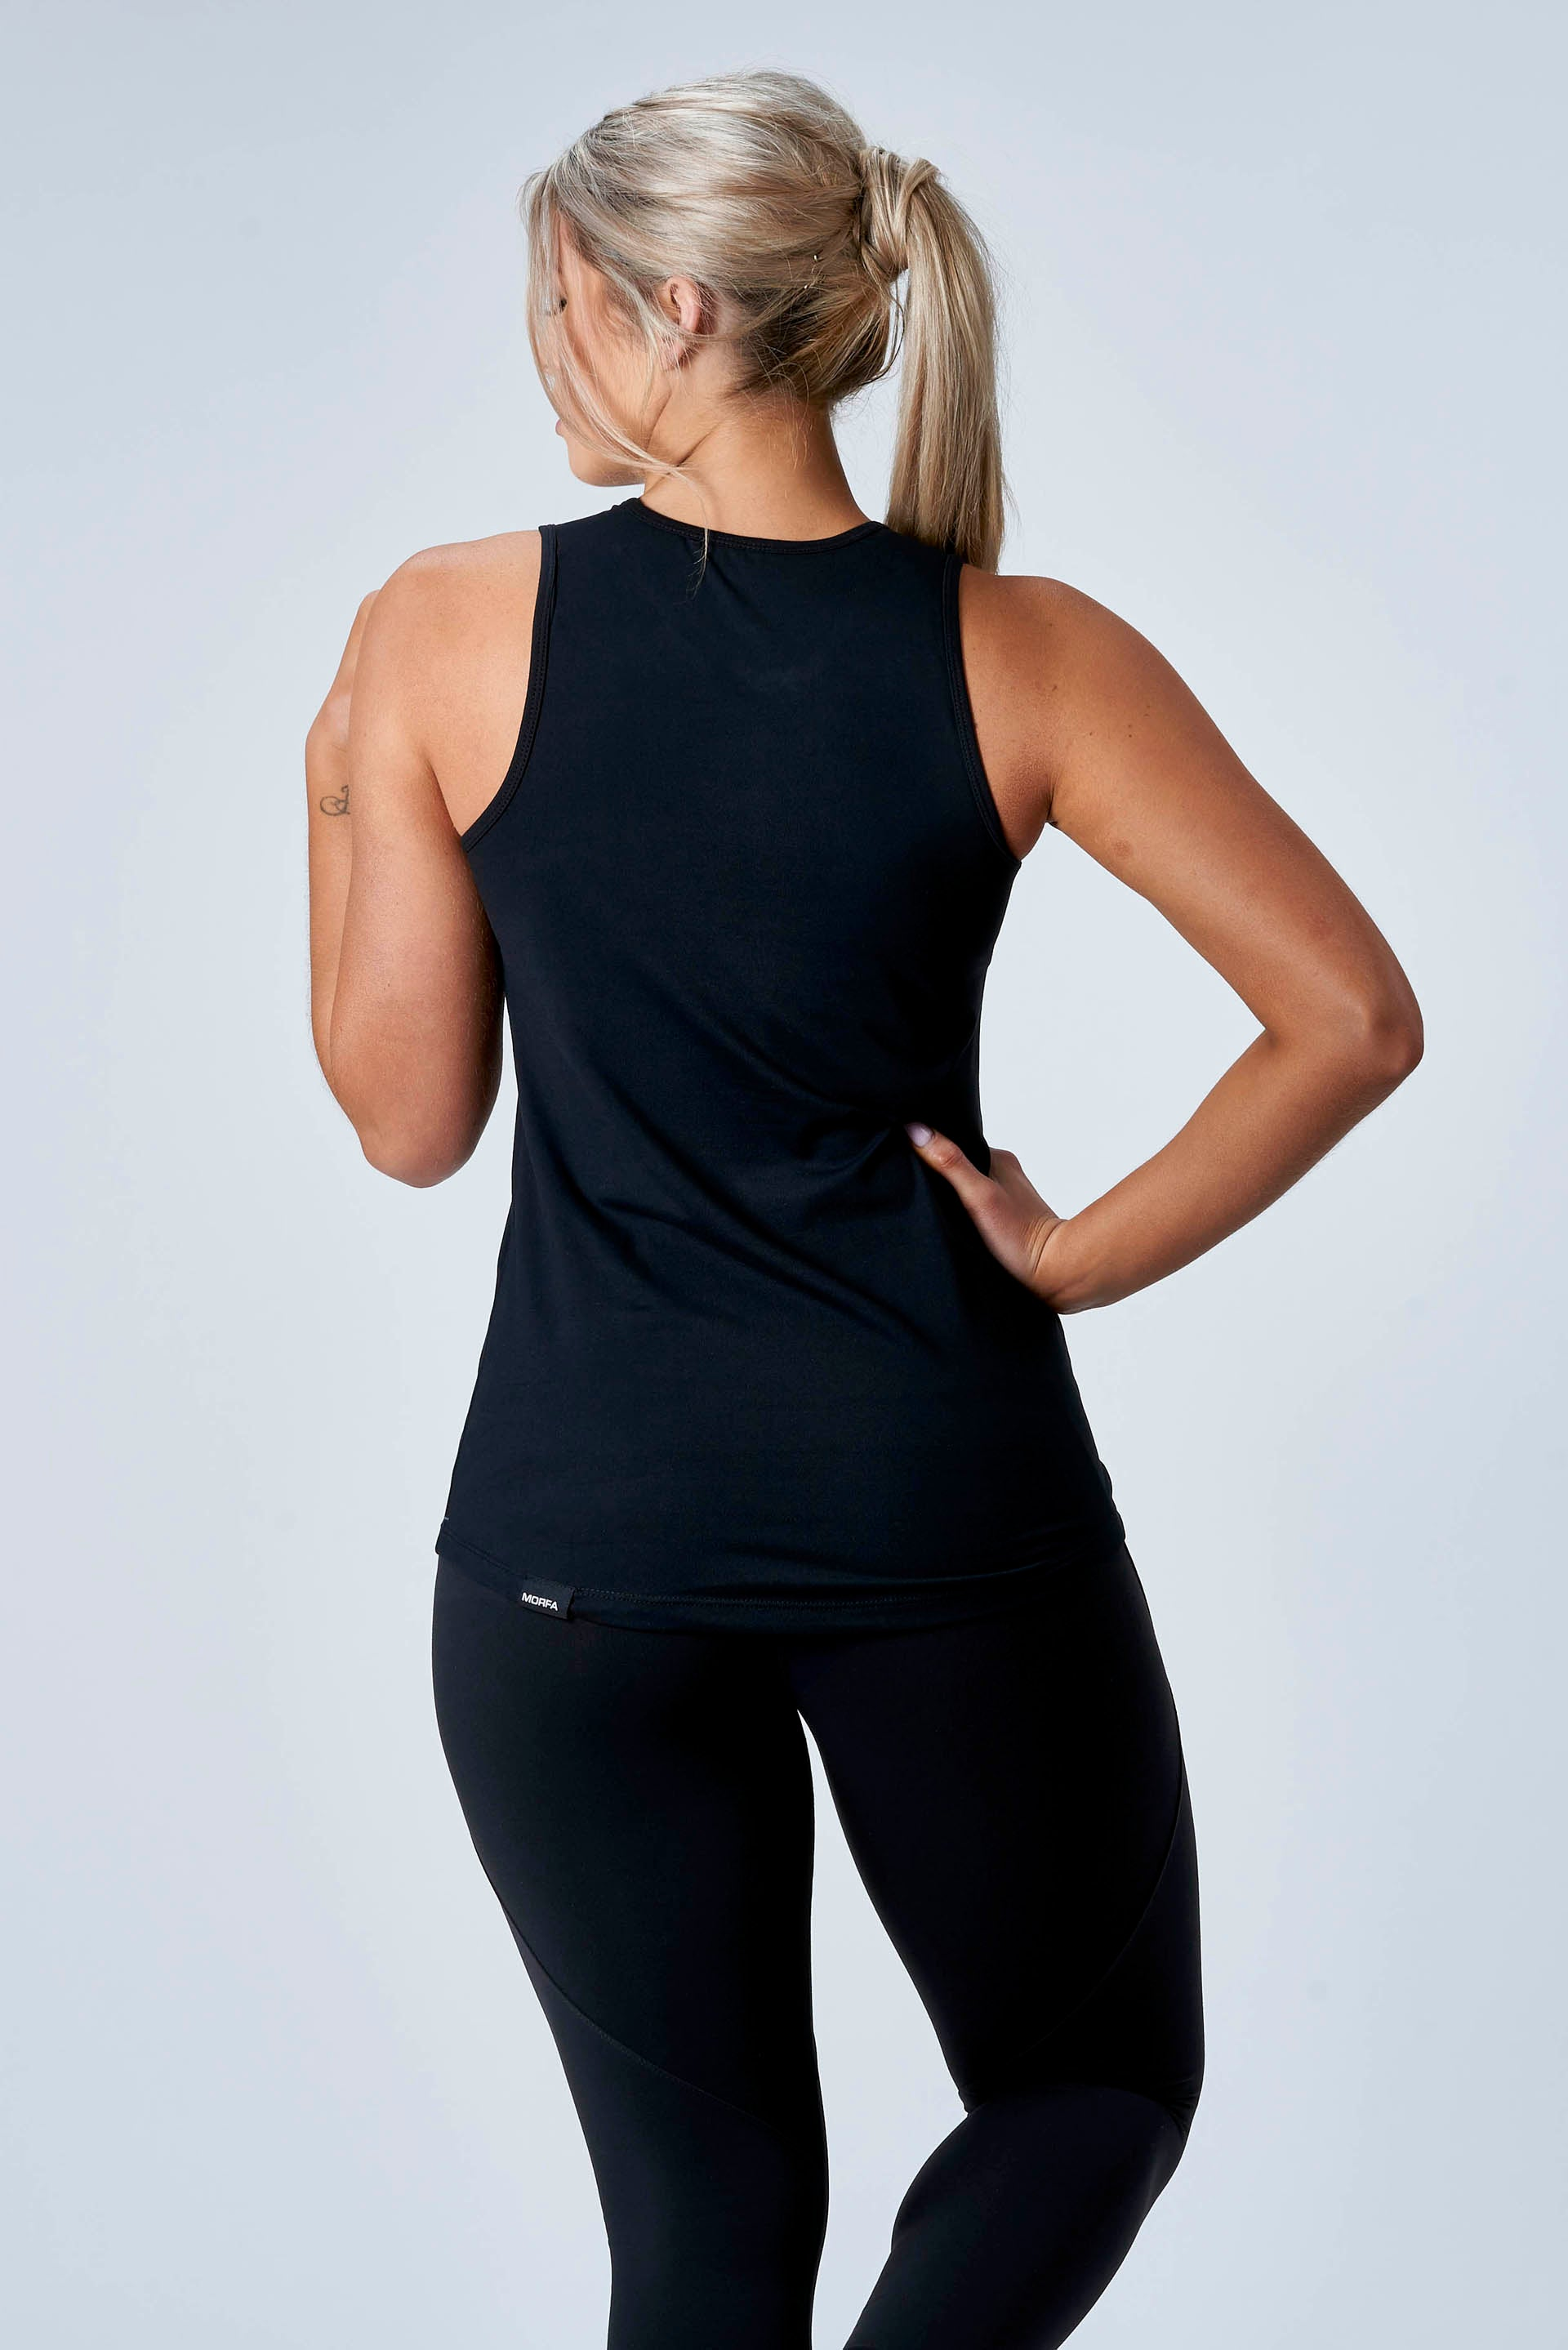 CarbonTech - HIGH NECK TANK - BLACK